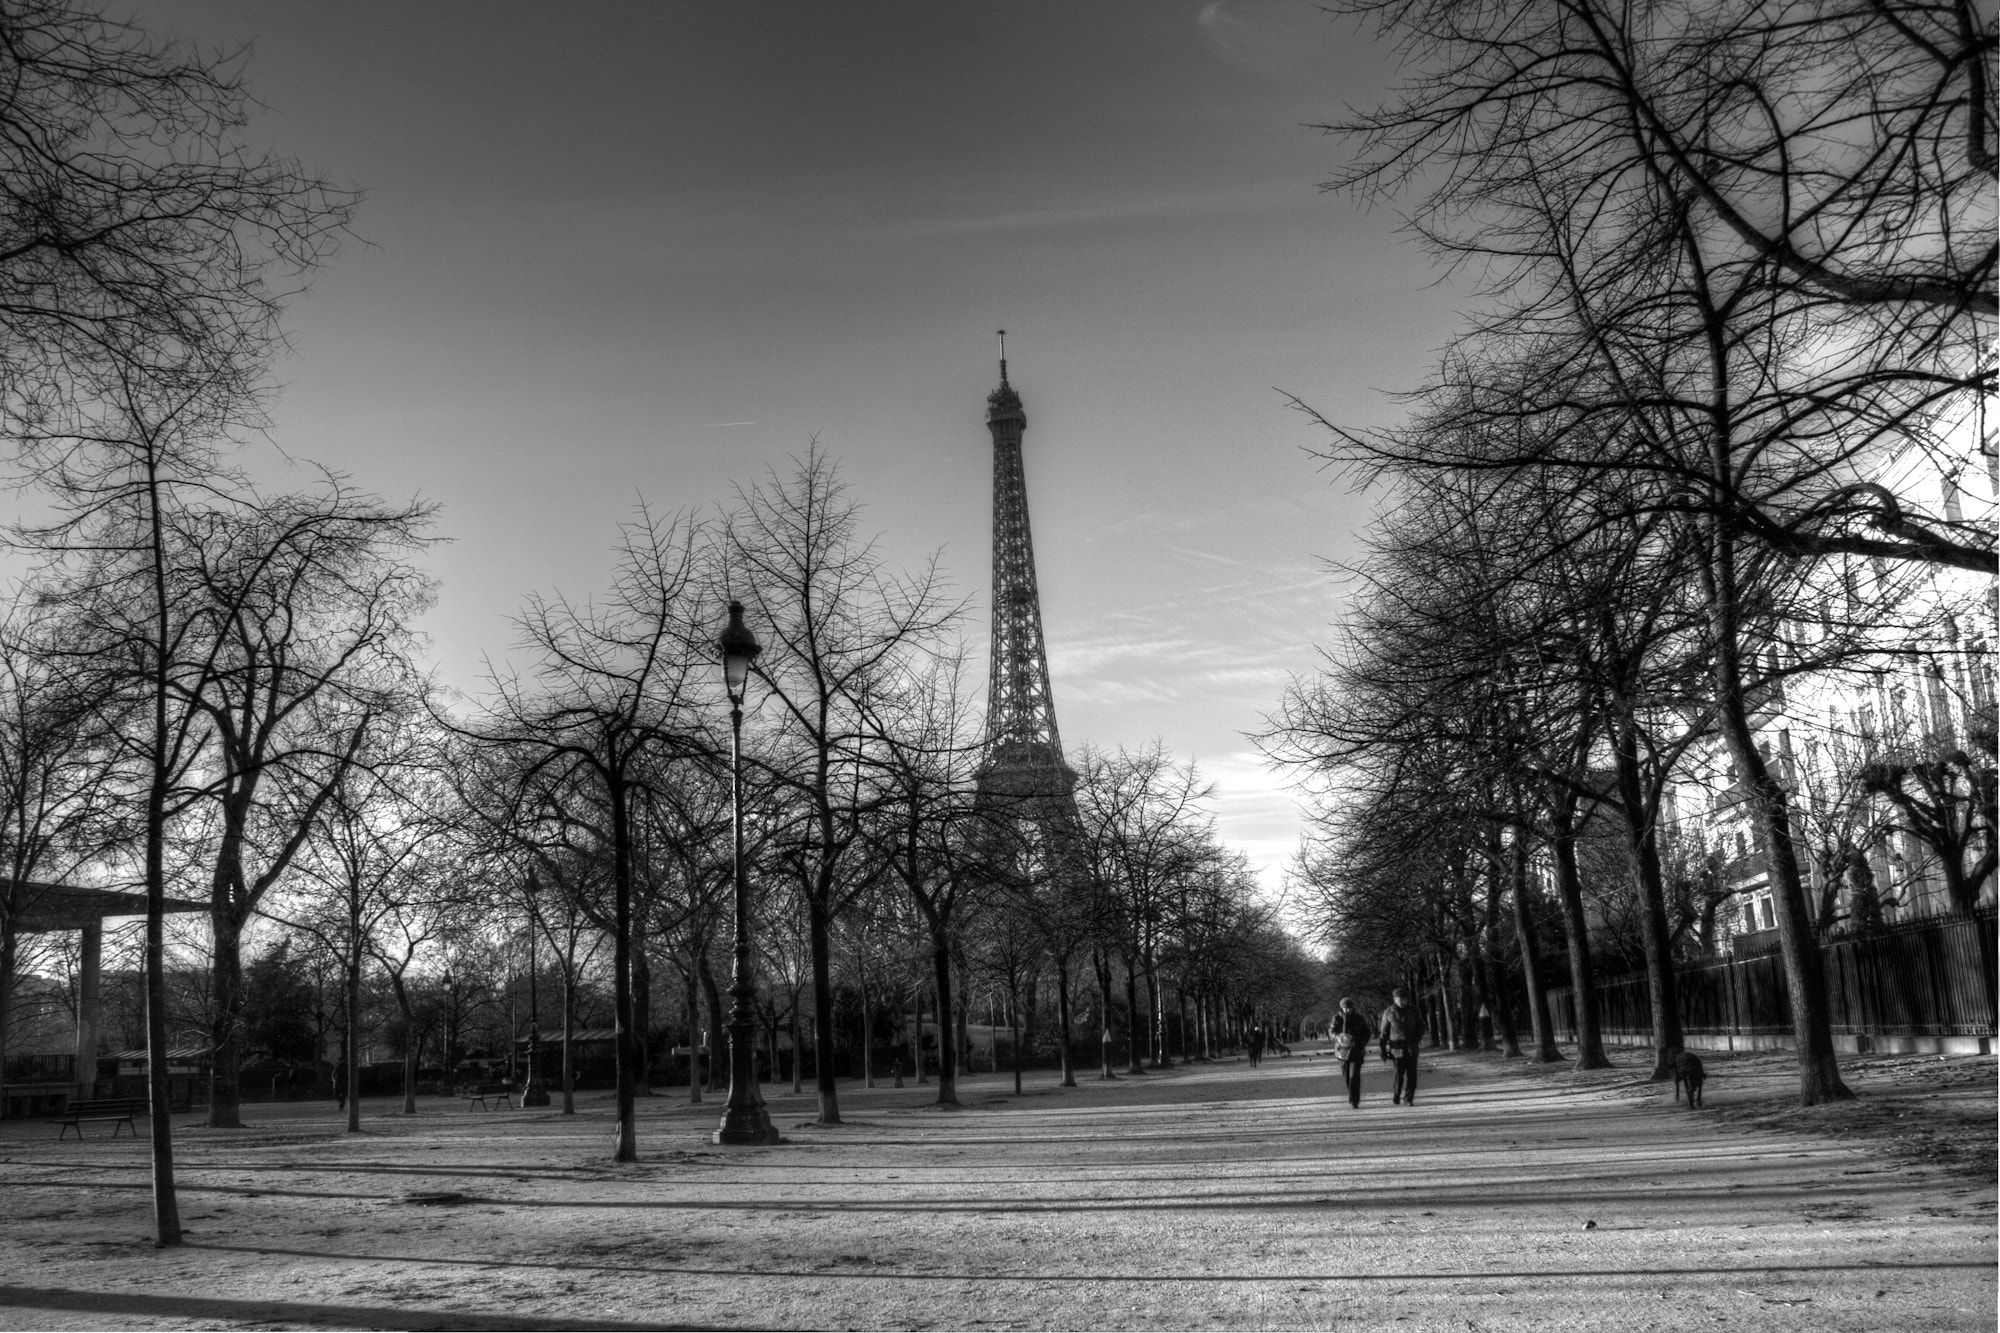 Photograph La promenade autour de la tour eiffel by Richard Hug on 500px